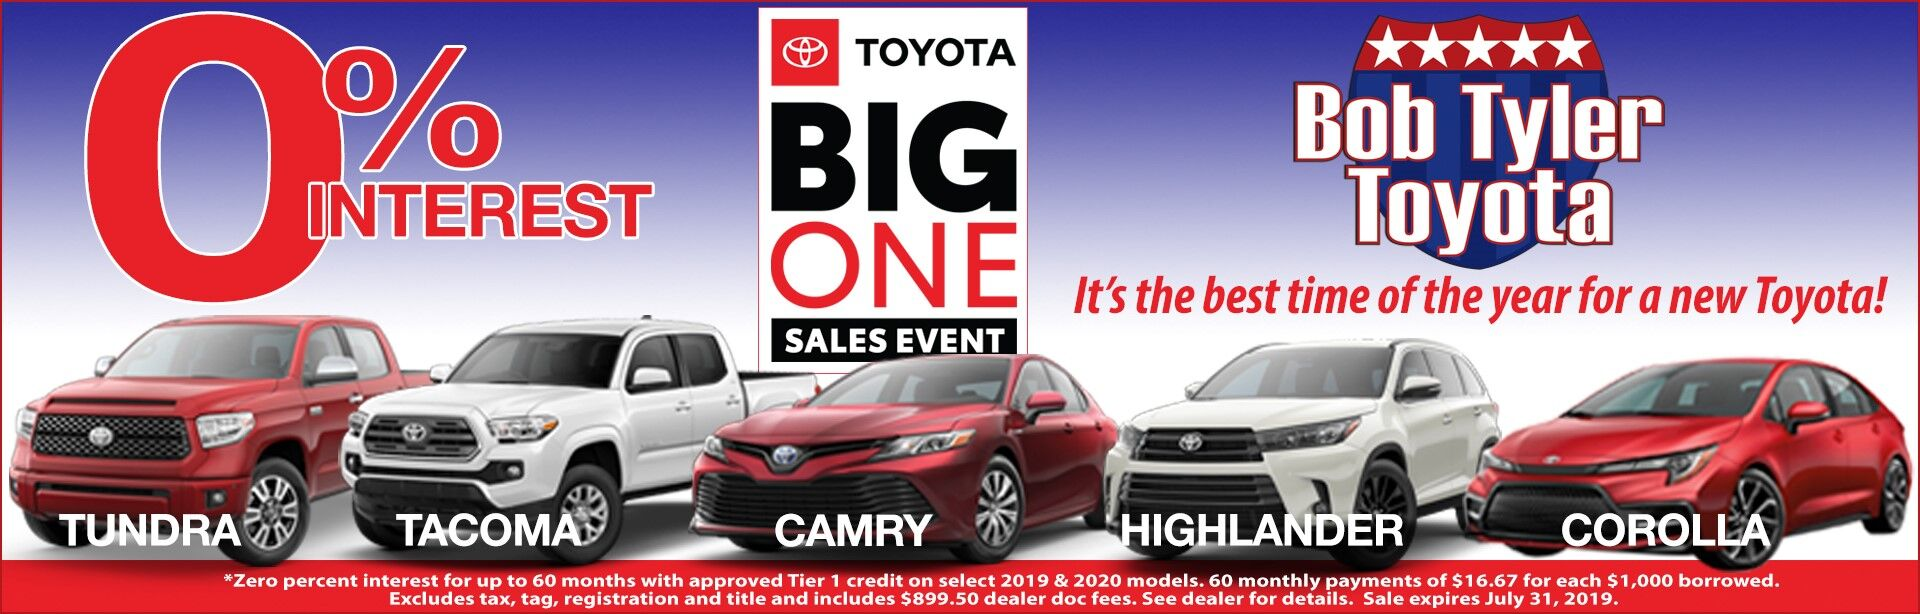 0% Interest Big One Sales Event